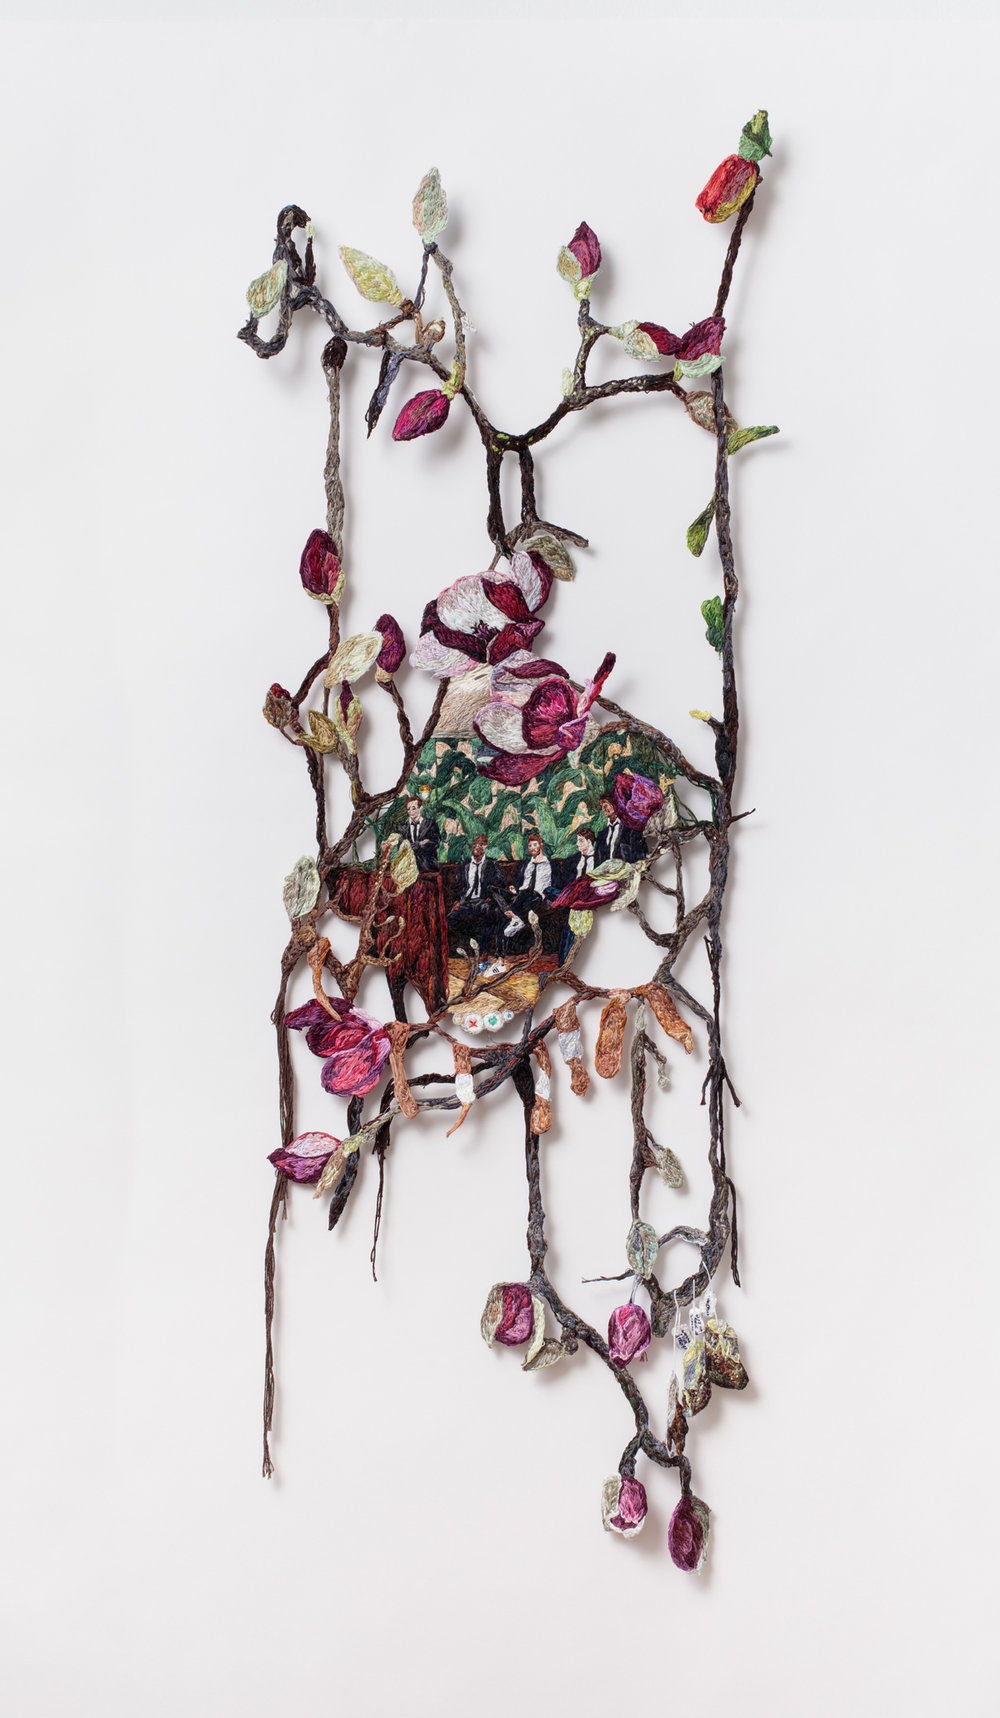 Self Care  , 2016, Embroidery Thread and Fabric, 46 x 16 in